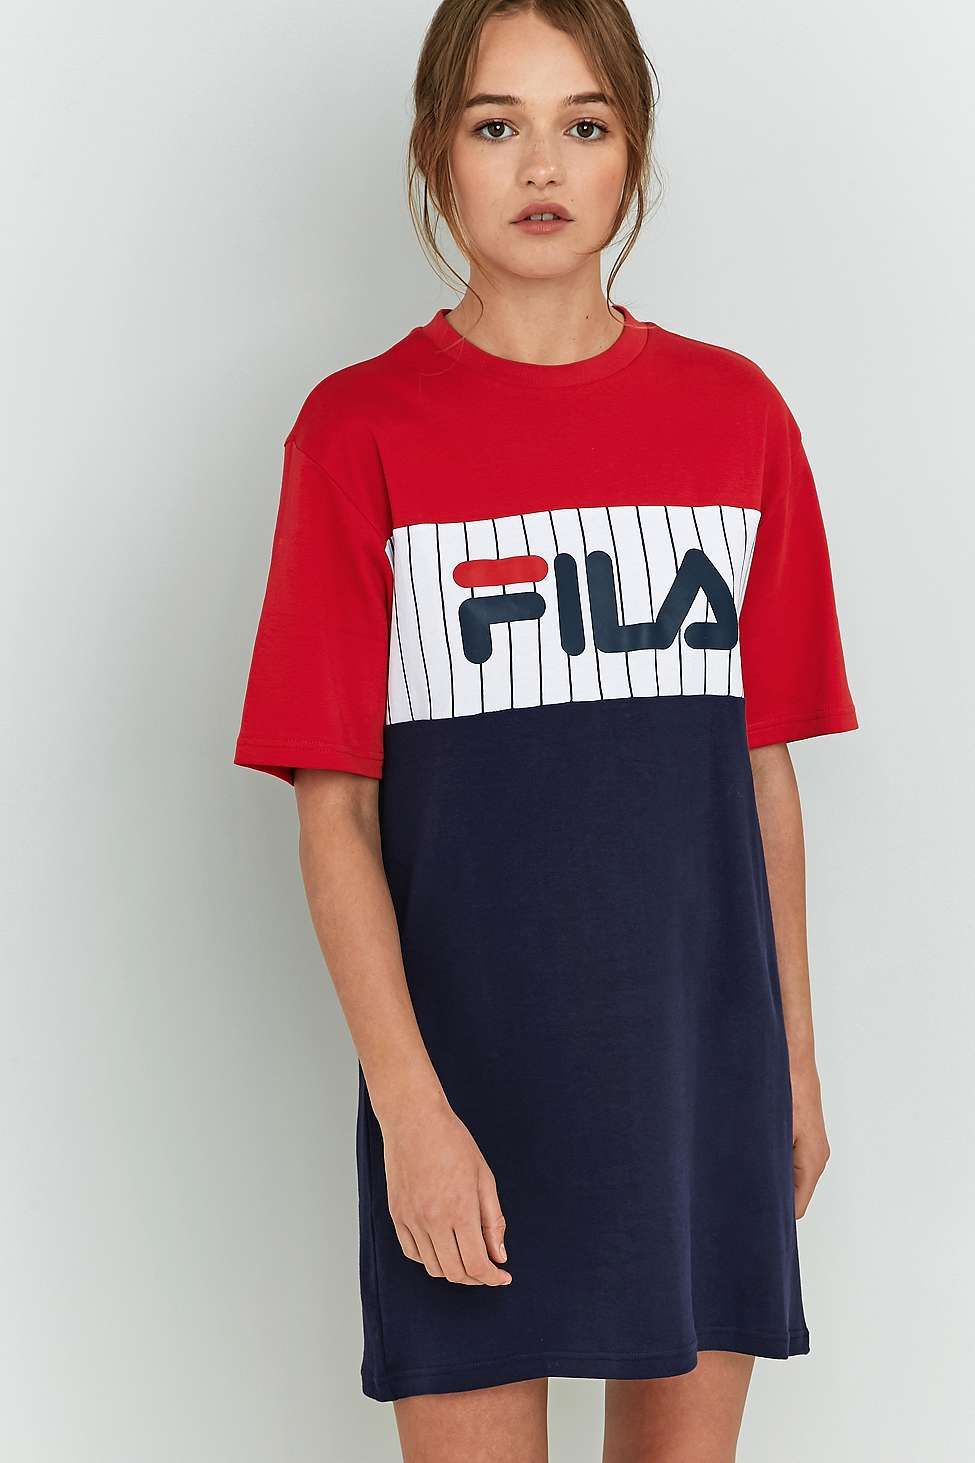 48477d91006c58 FILA Ruby T-Shirt Dress | Outfits | Robe tshirt, Robe fila, Robe sweat